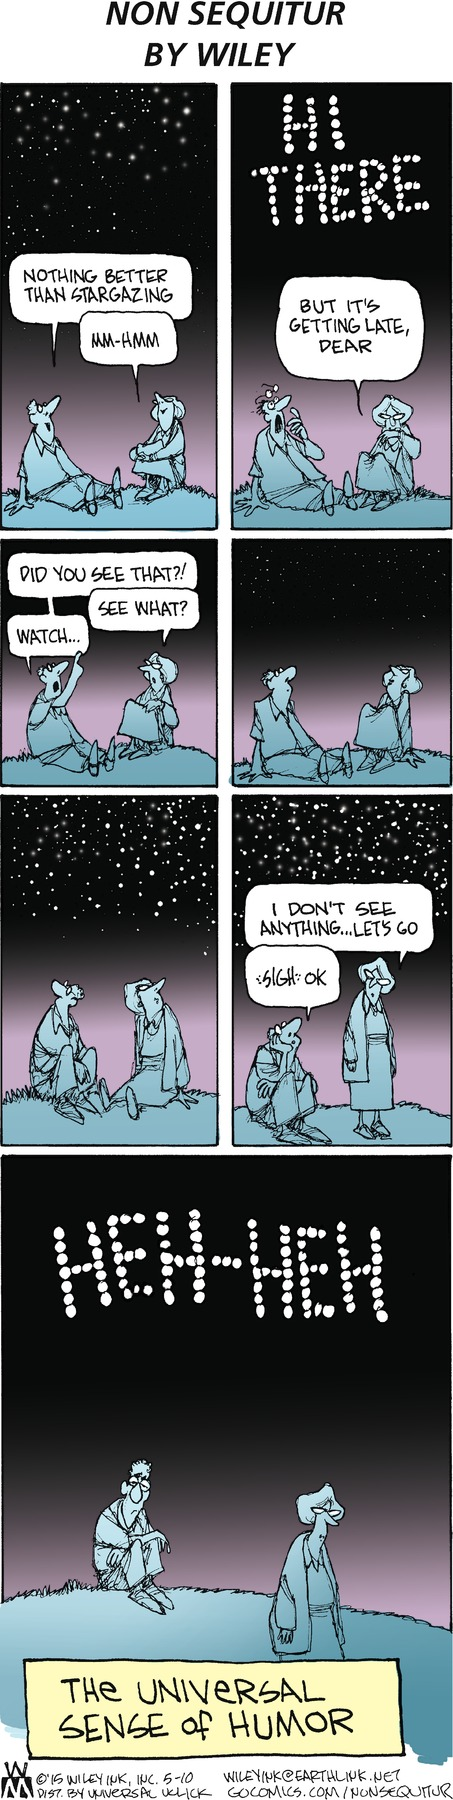 Non Sequitur Comic Strip for May 10, 2015